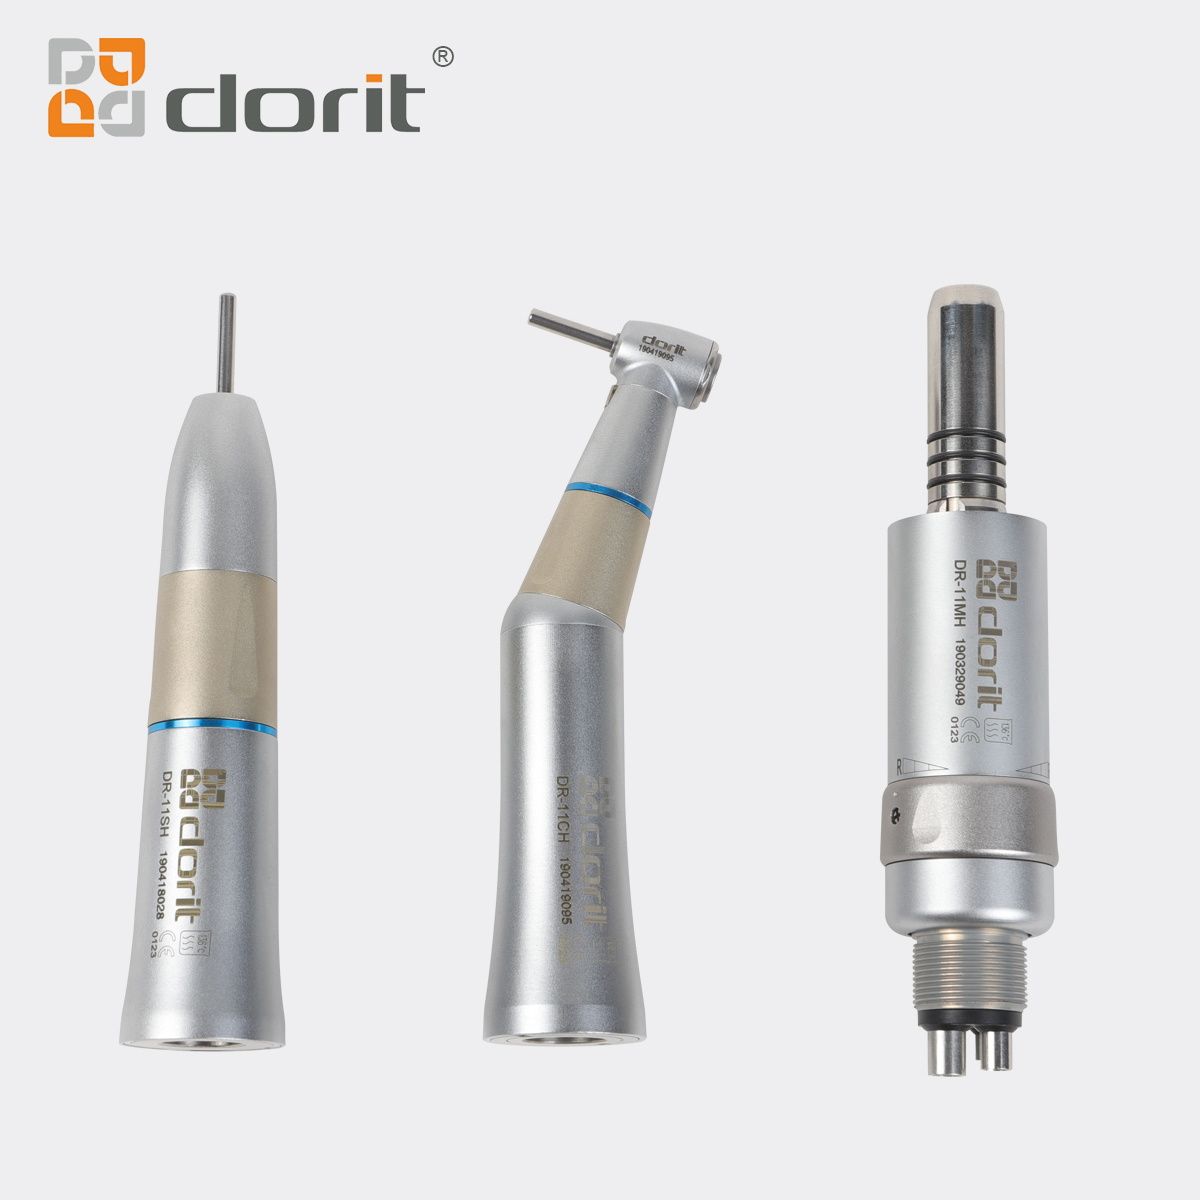 1:1 Low Speed Dental Handpiece Kit Contra Angle Handpiece/ Straight Handpiece/ Air Motor